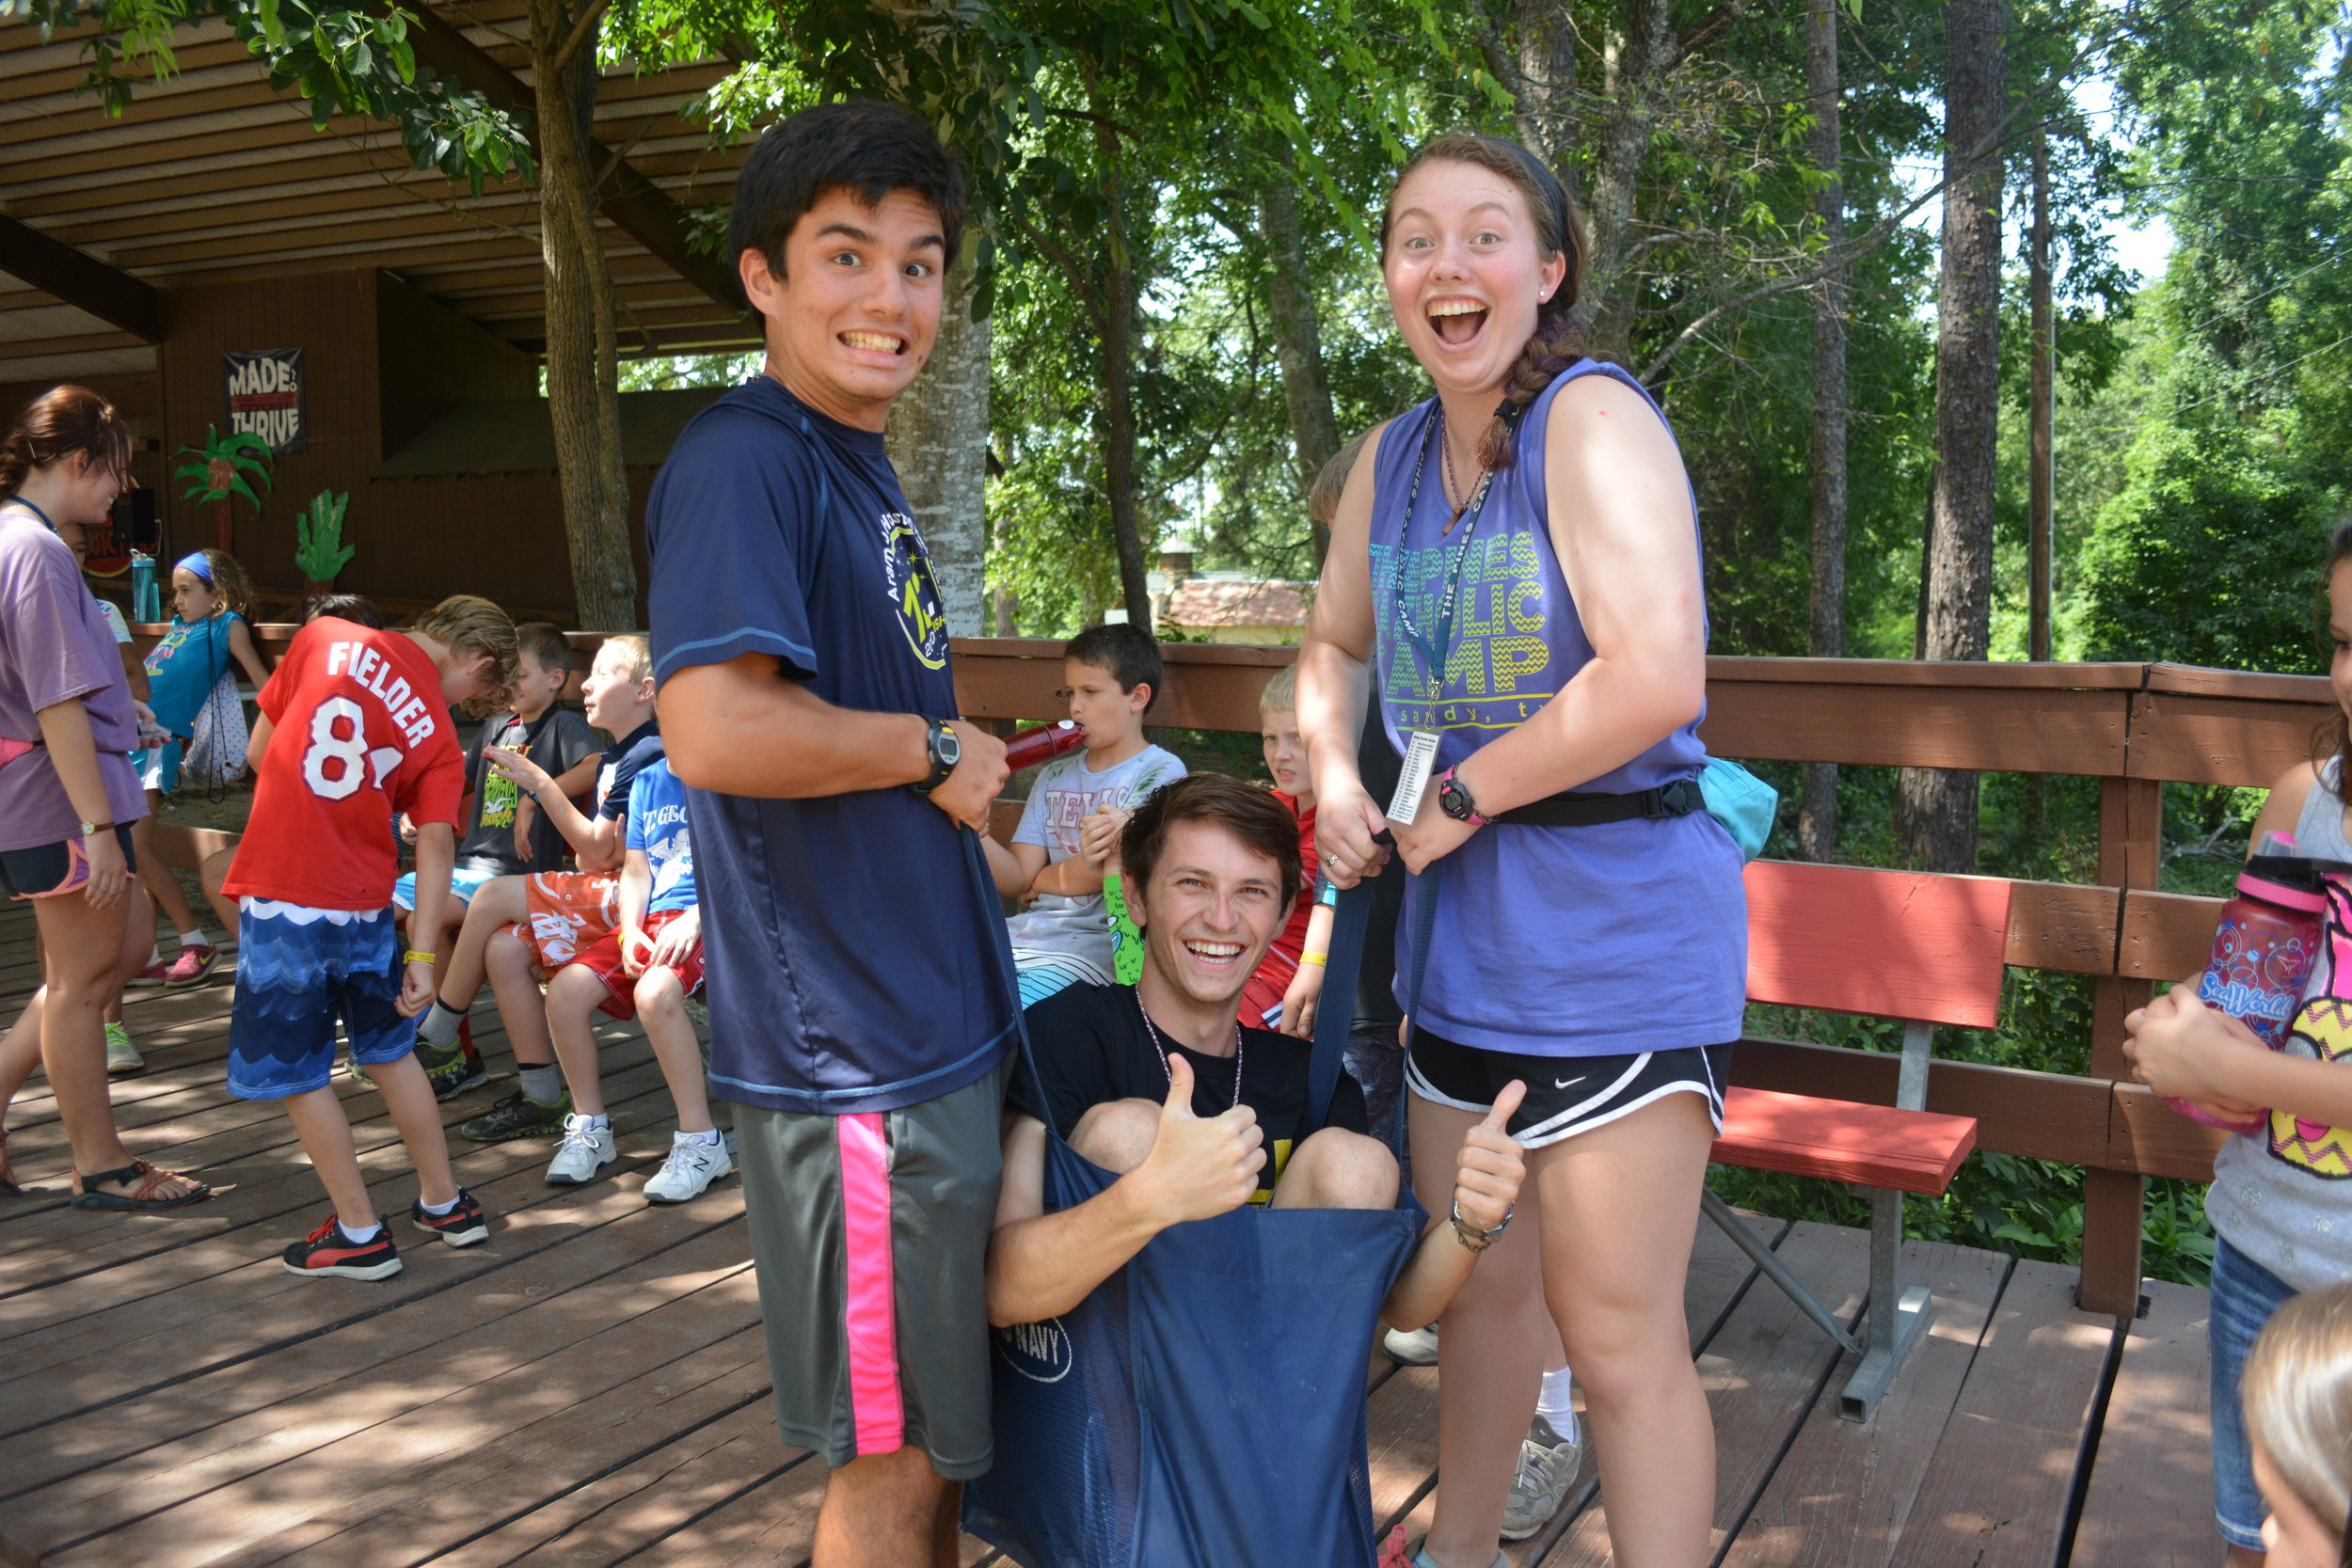 Counselor in Training - The Counselor in Training Sessions are available for rising seniors in high school. This two-week program has campers learning invaluable leadership skills while growing in love with the Lord in a deeper way. During their second week, they will be in cabins with counselors, shadowing and taking lead where opportunities present themselves.